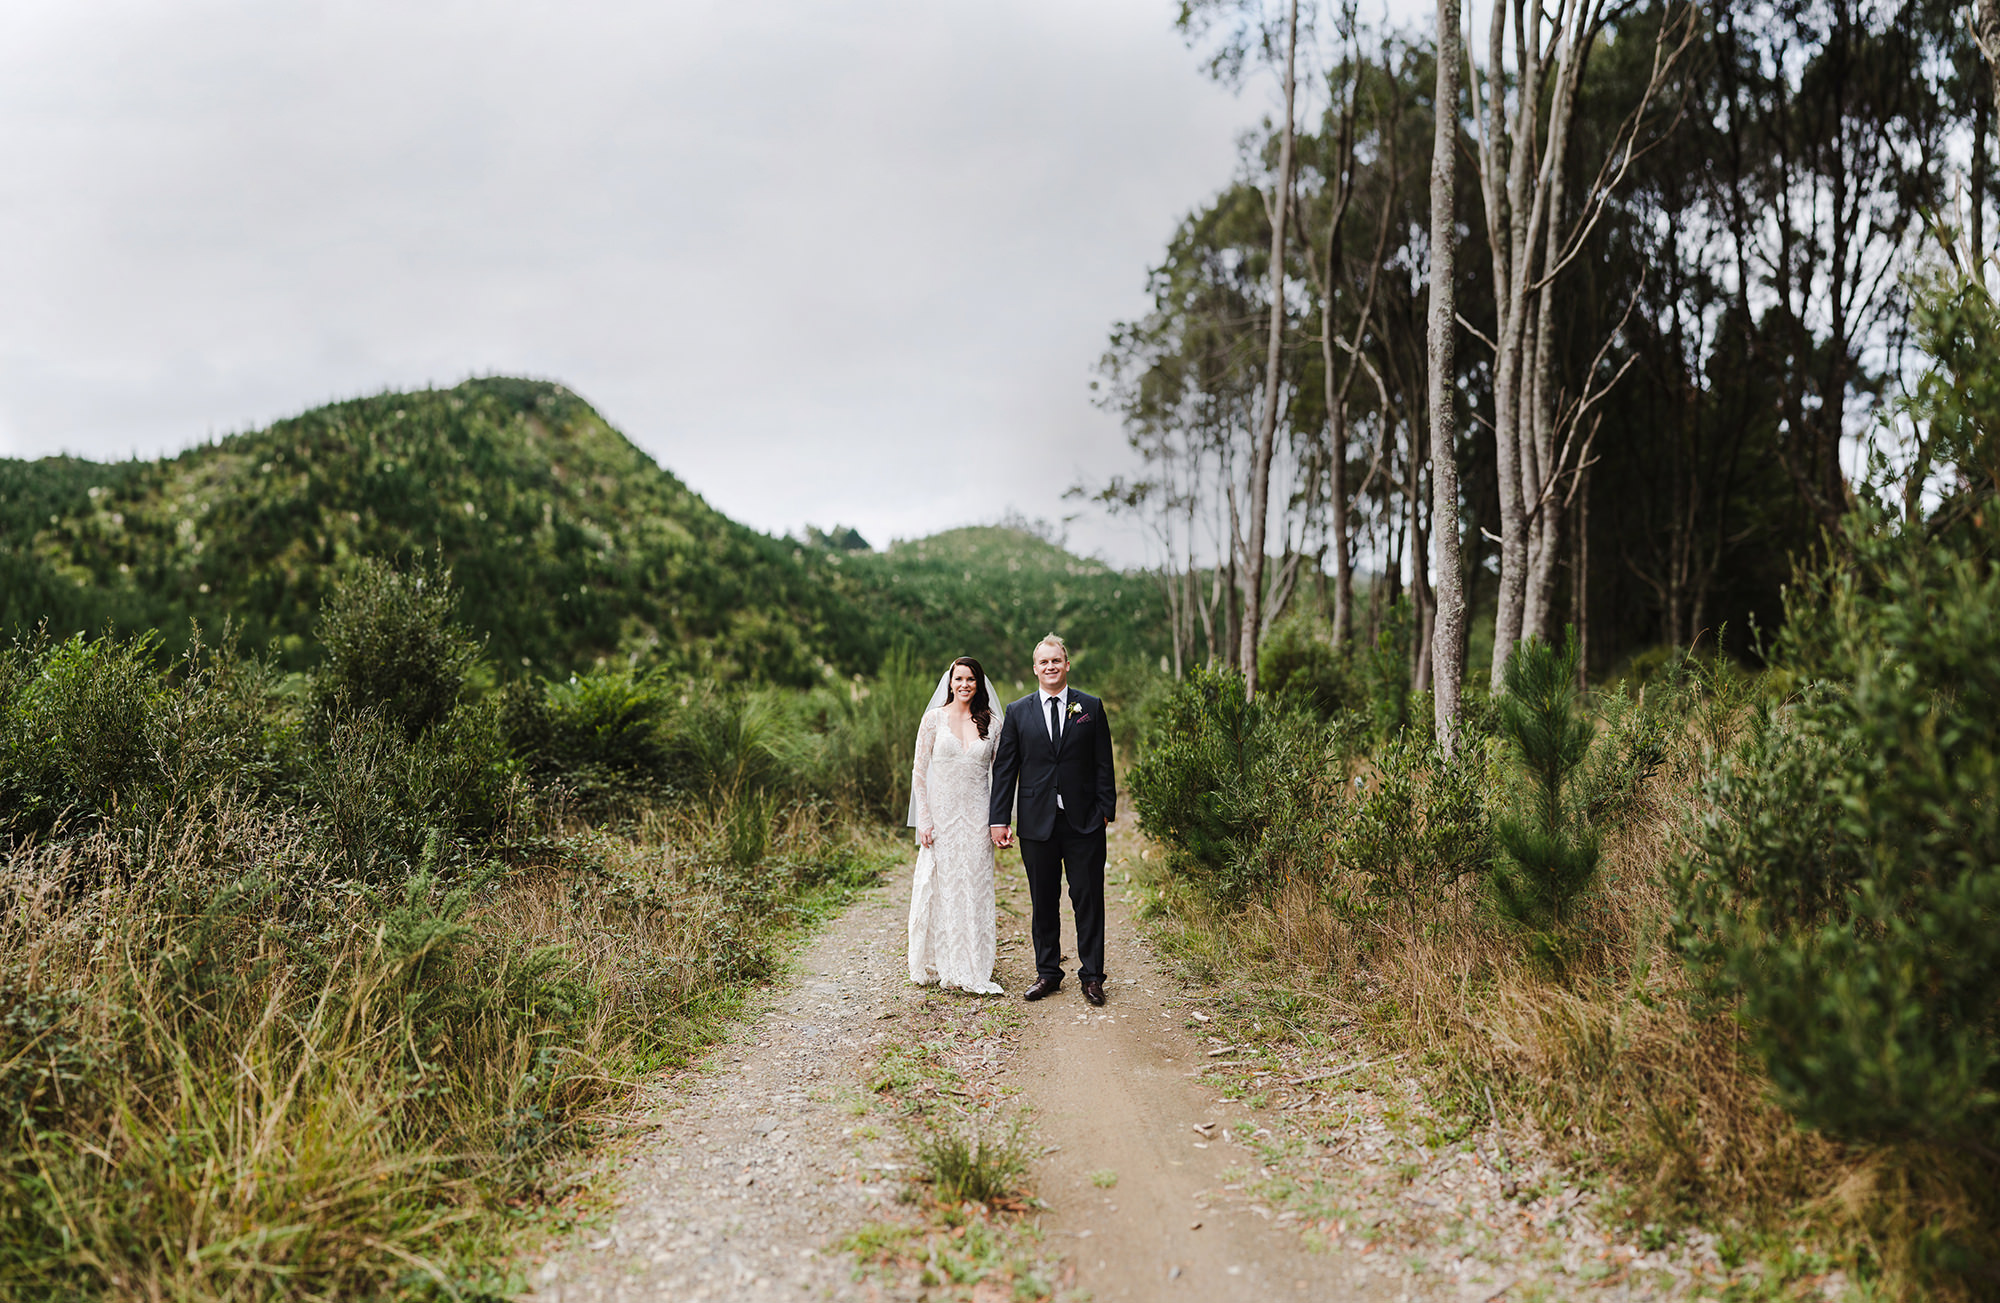 brenizer method wedding portrait new zealand.jpg